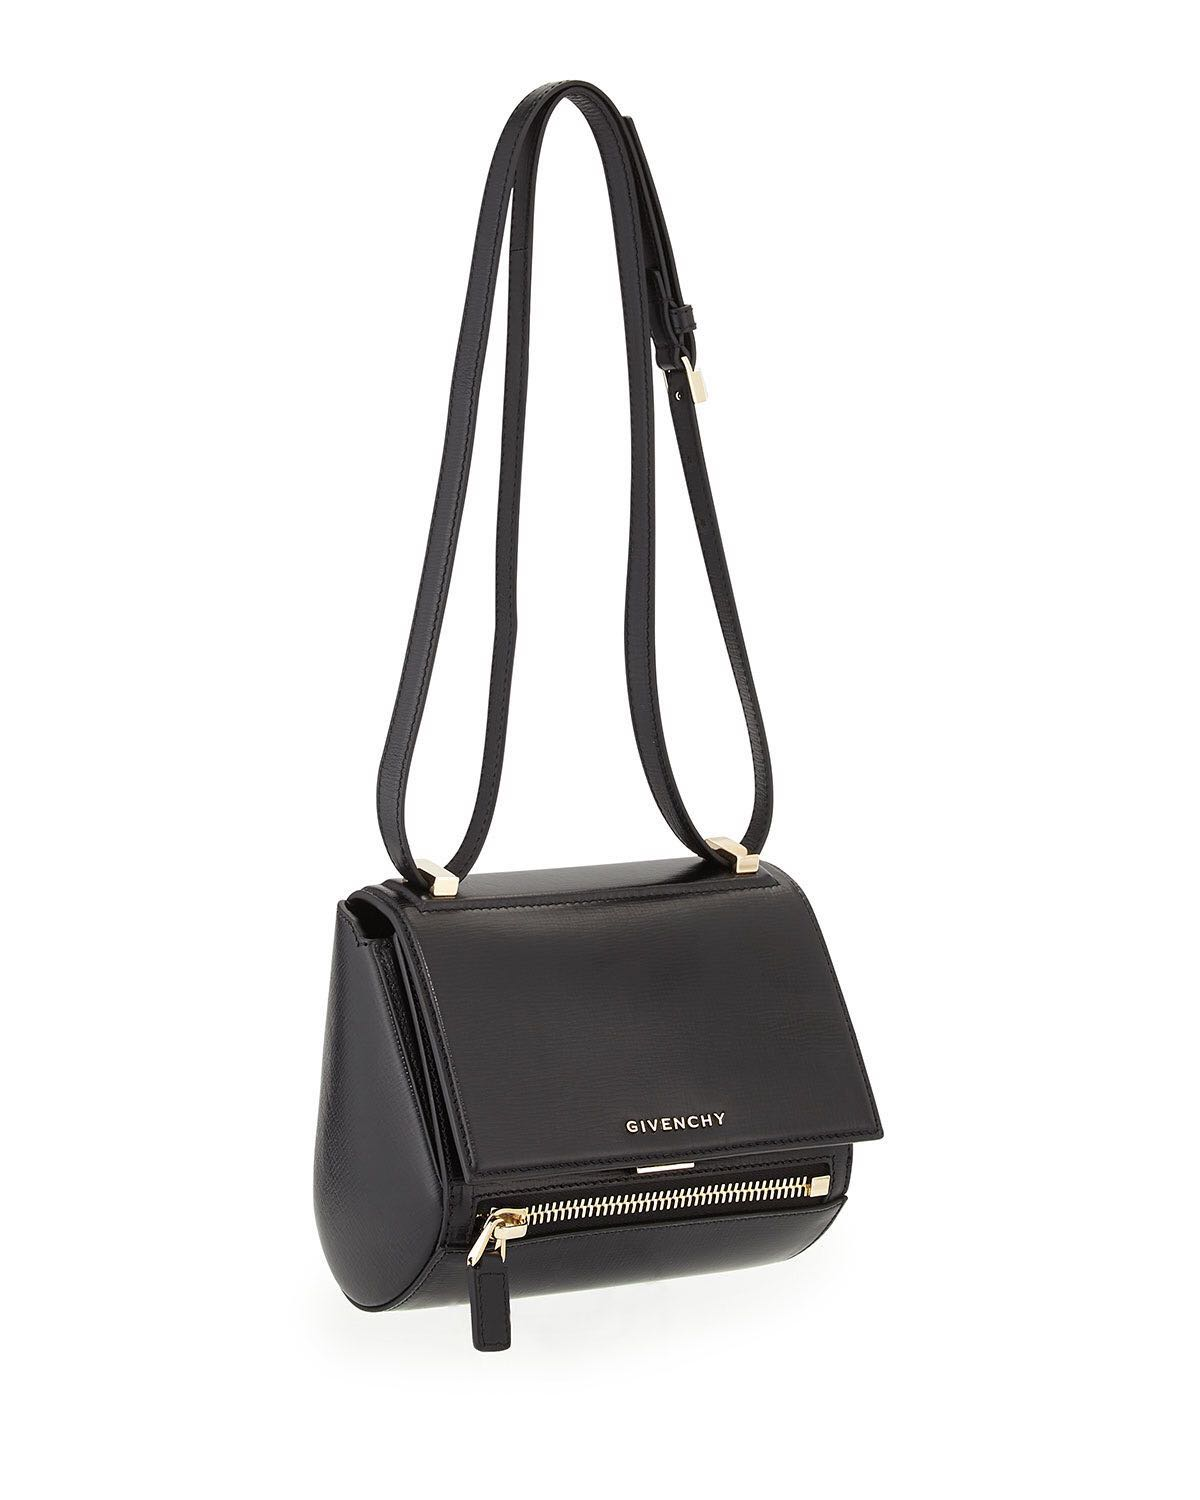 2db61e80ce63 Givenchy Mini Pandora Box Black Leather